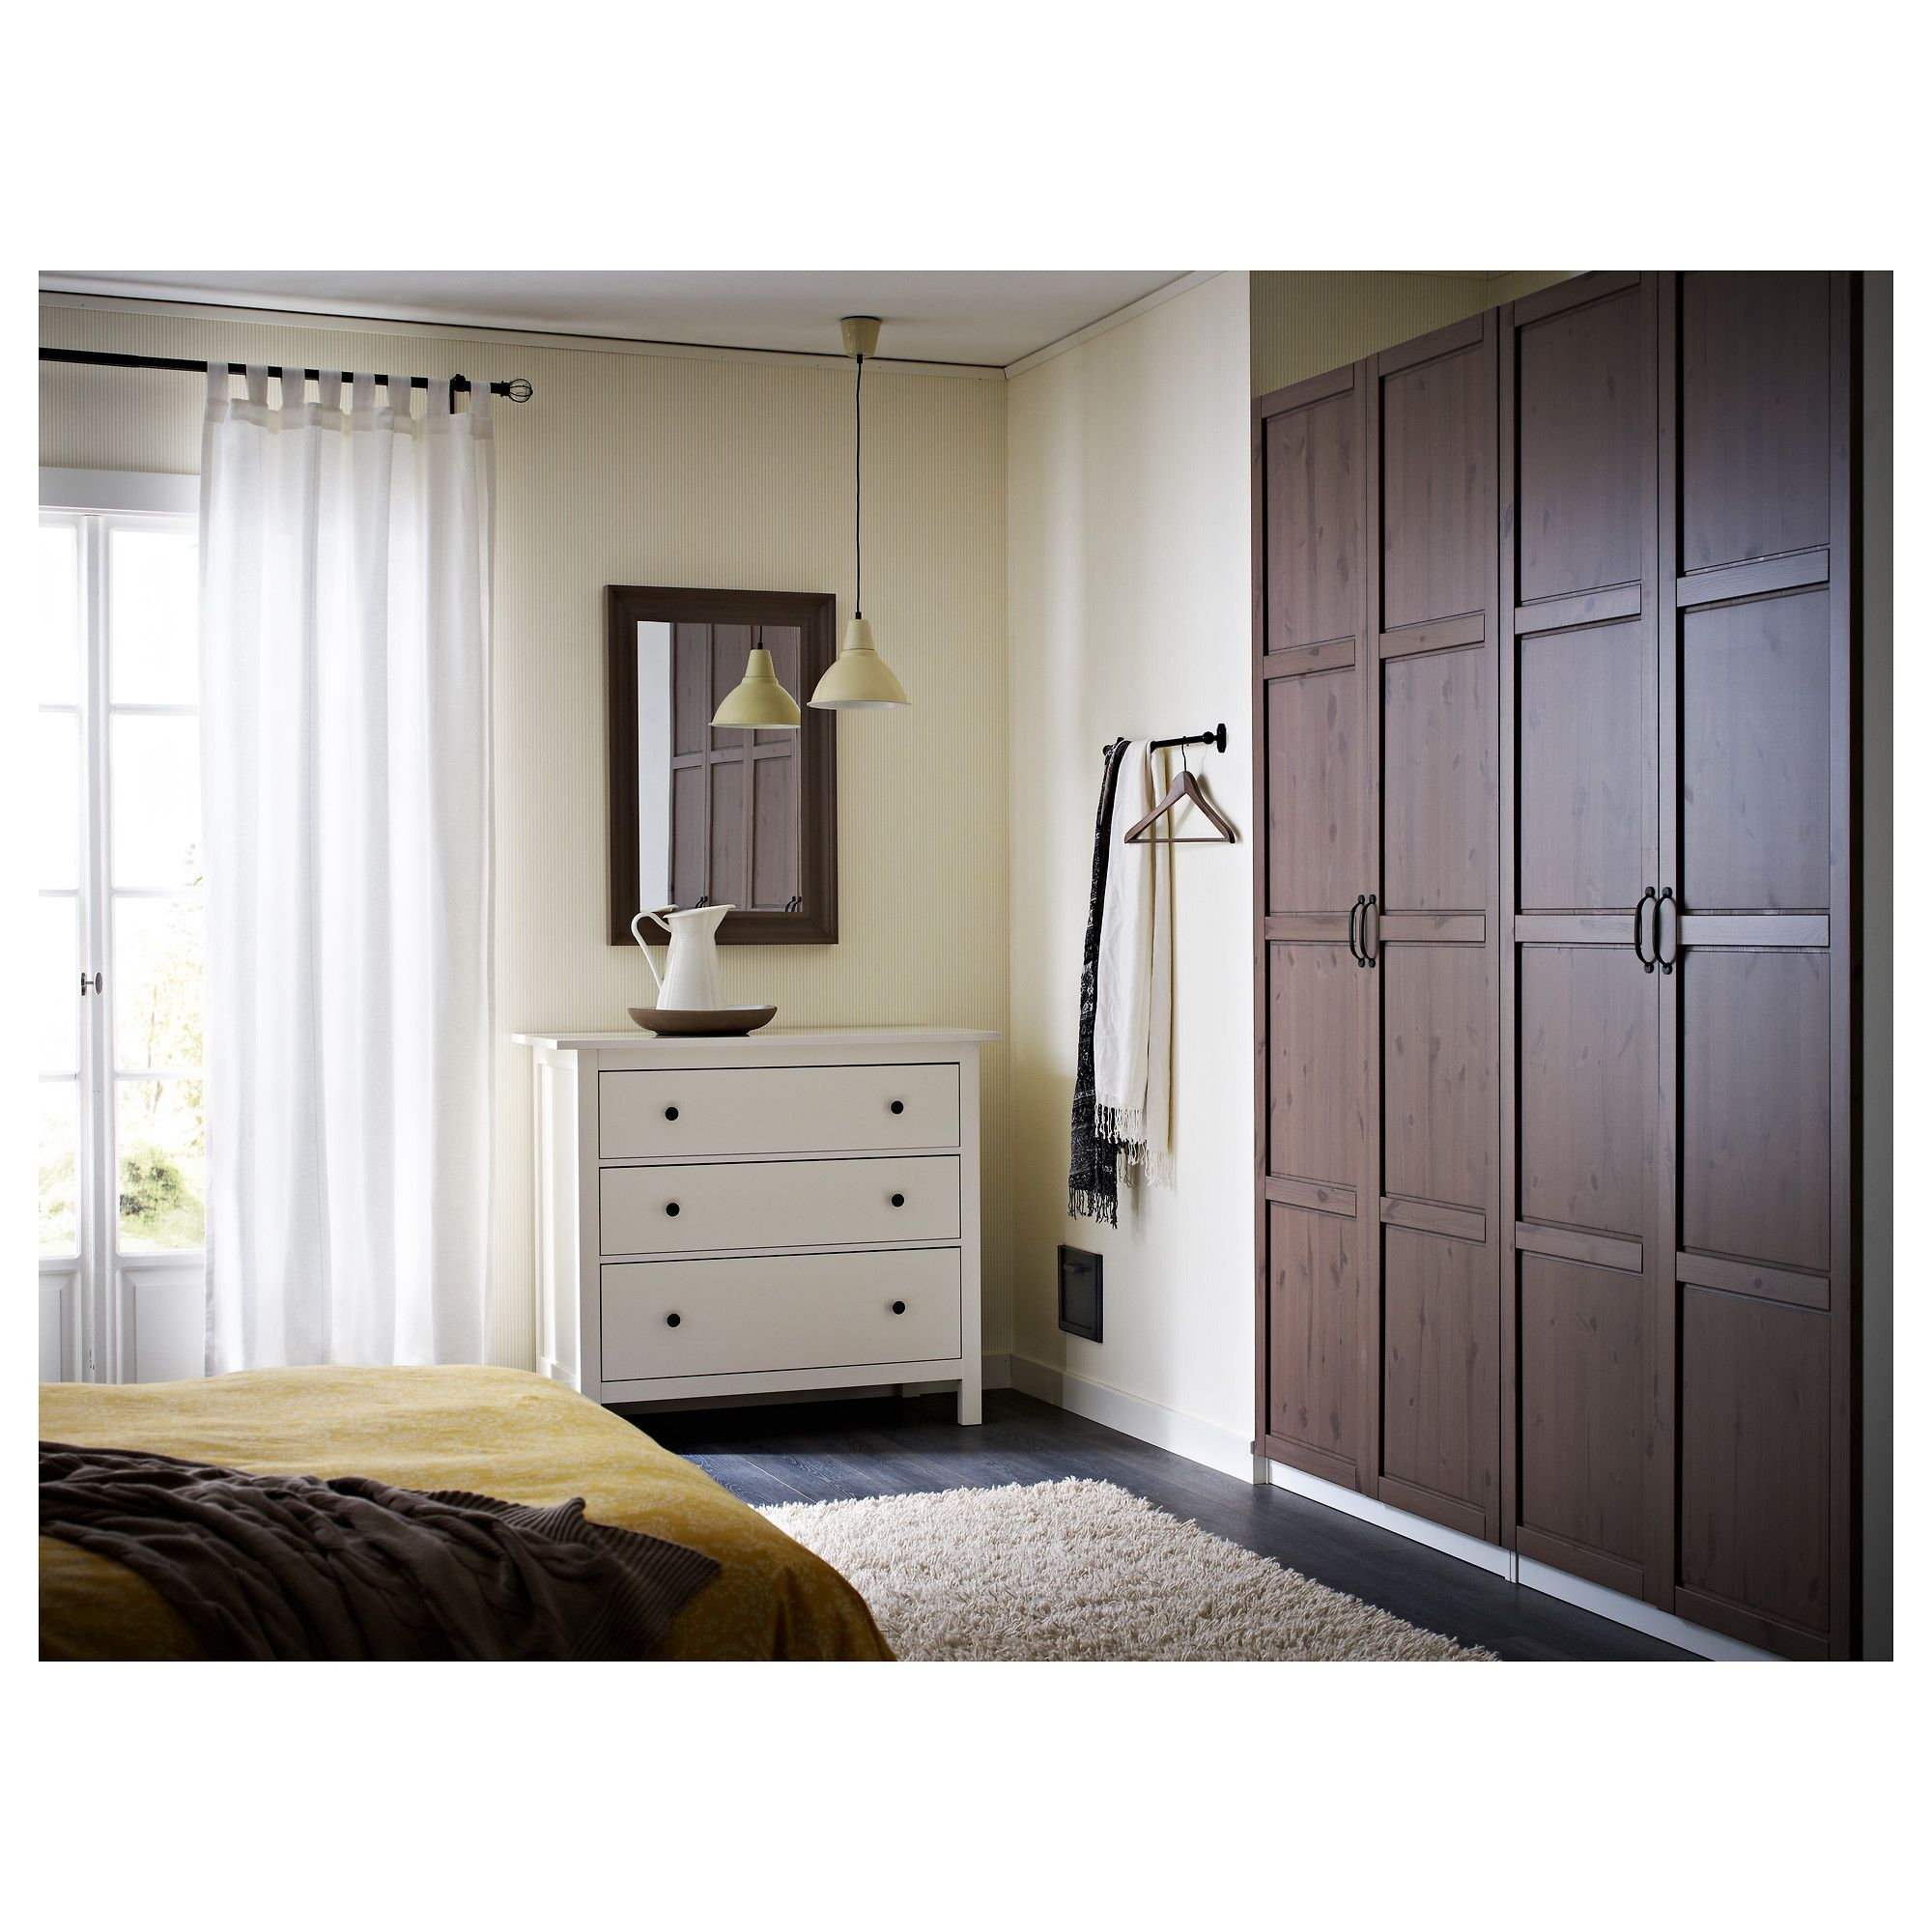 Armoire Sdb Ikea Hemnes Mirror Black Brown Home Decor Pinterest